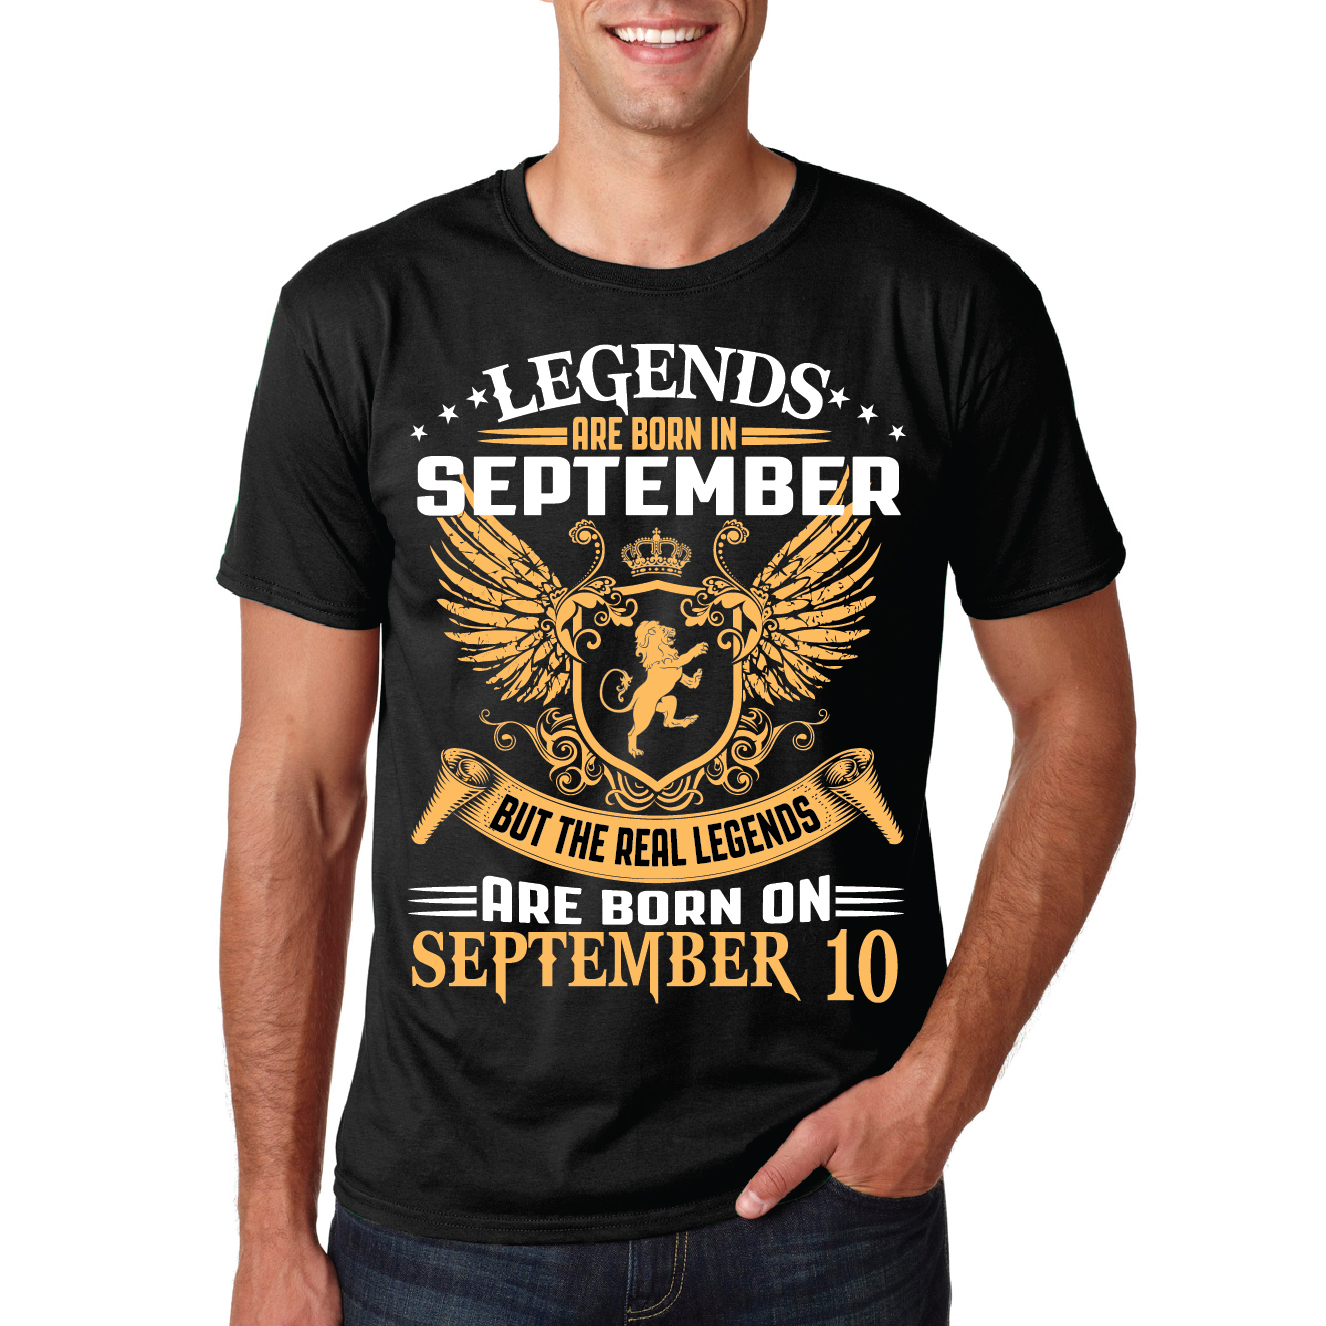 THE REAL LEGENDS ARE BORN ON SEPTEMBER 10- BLACK